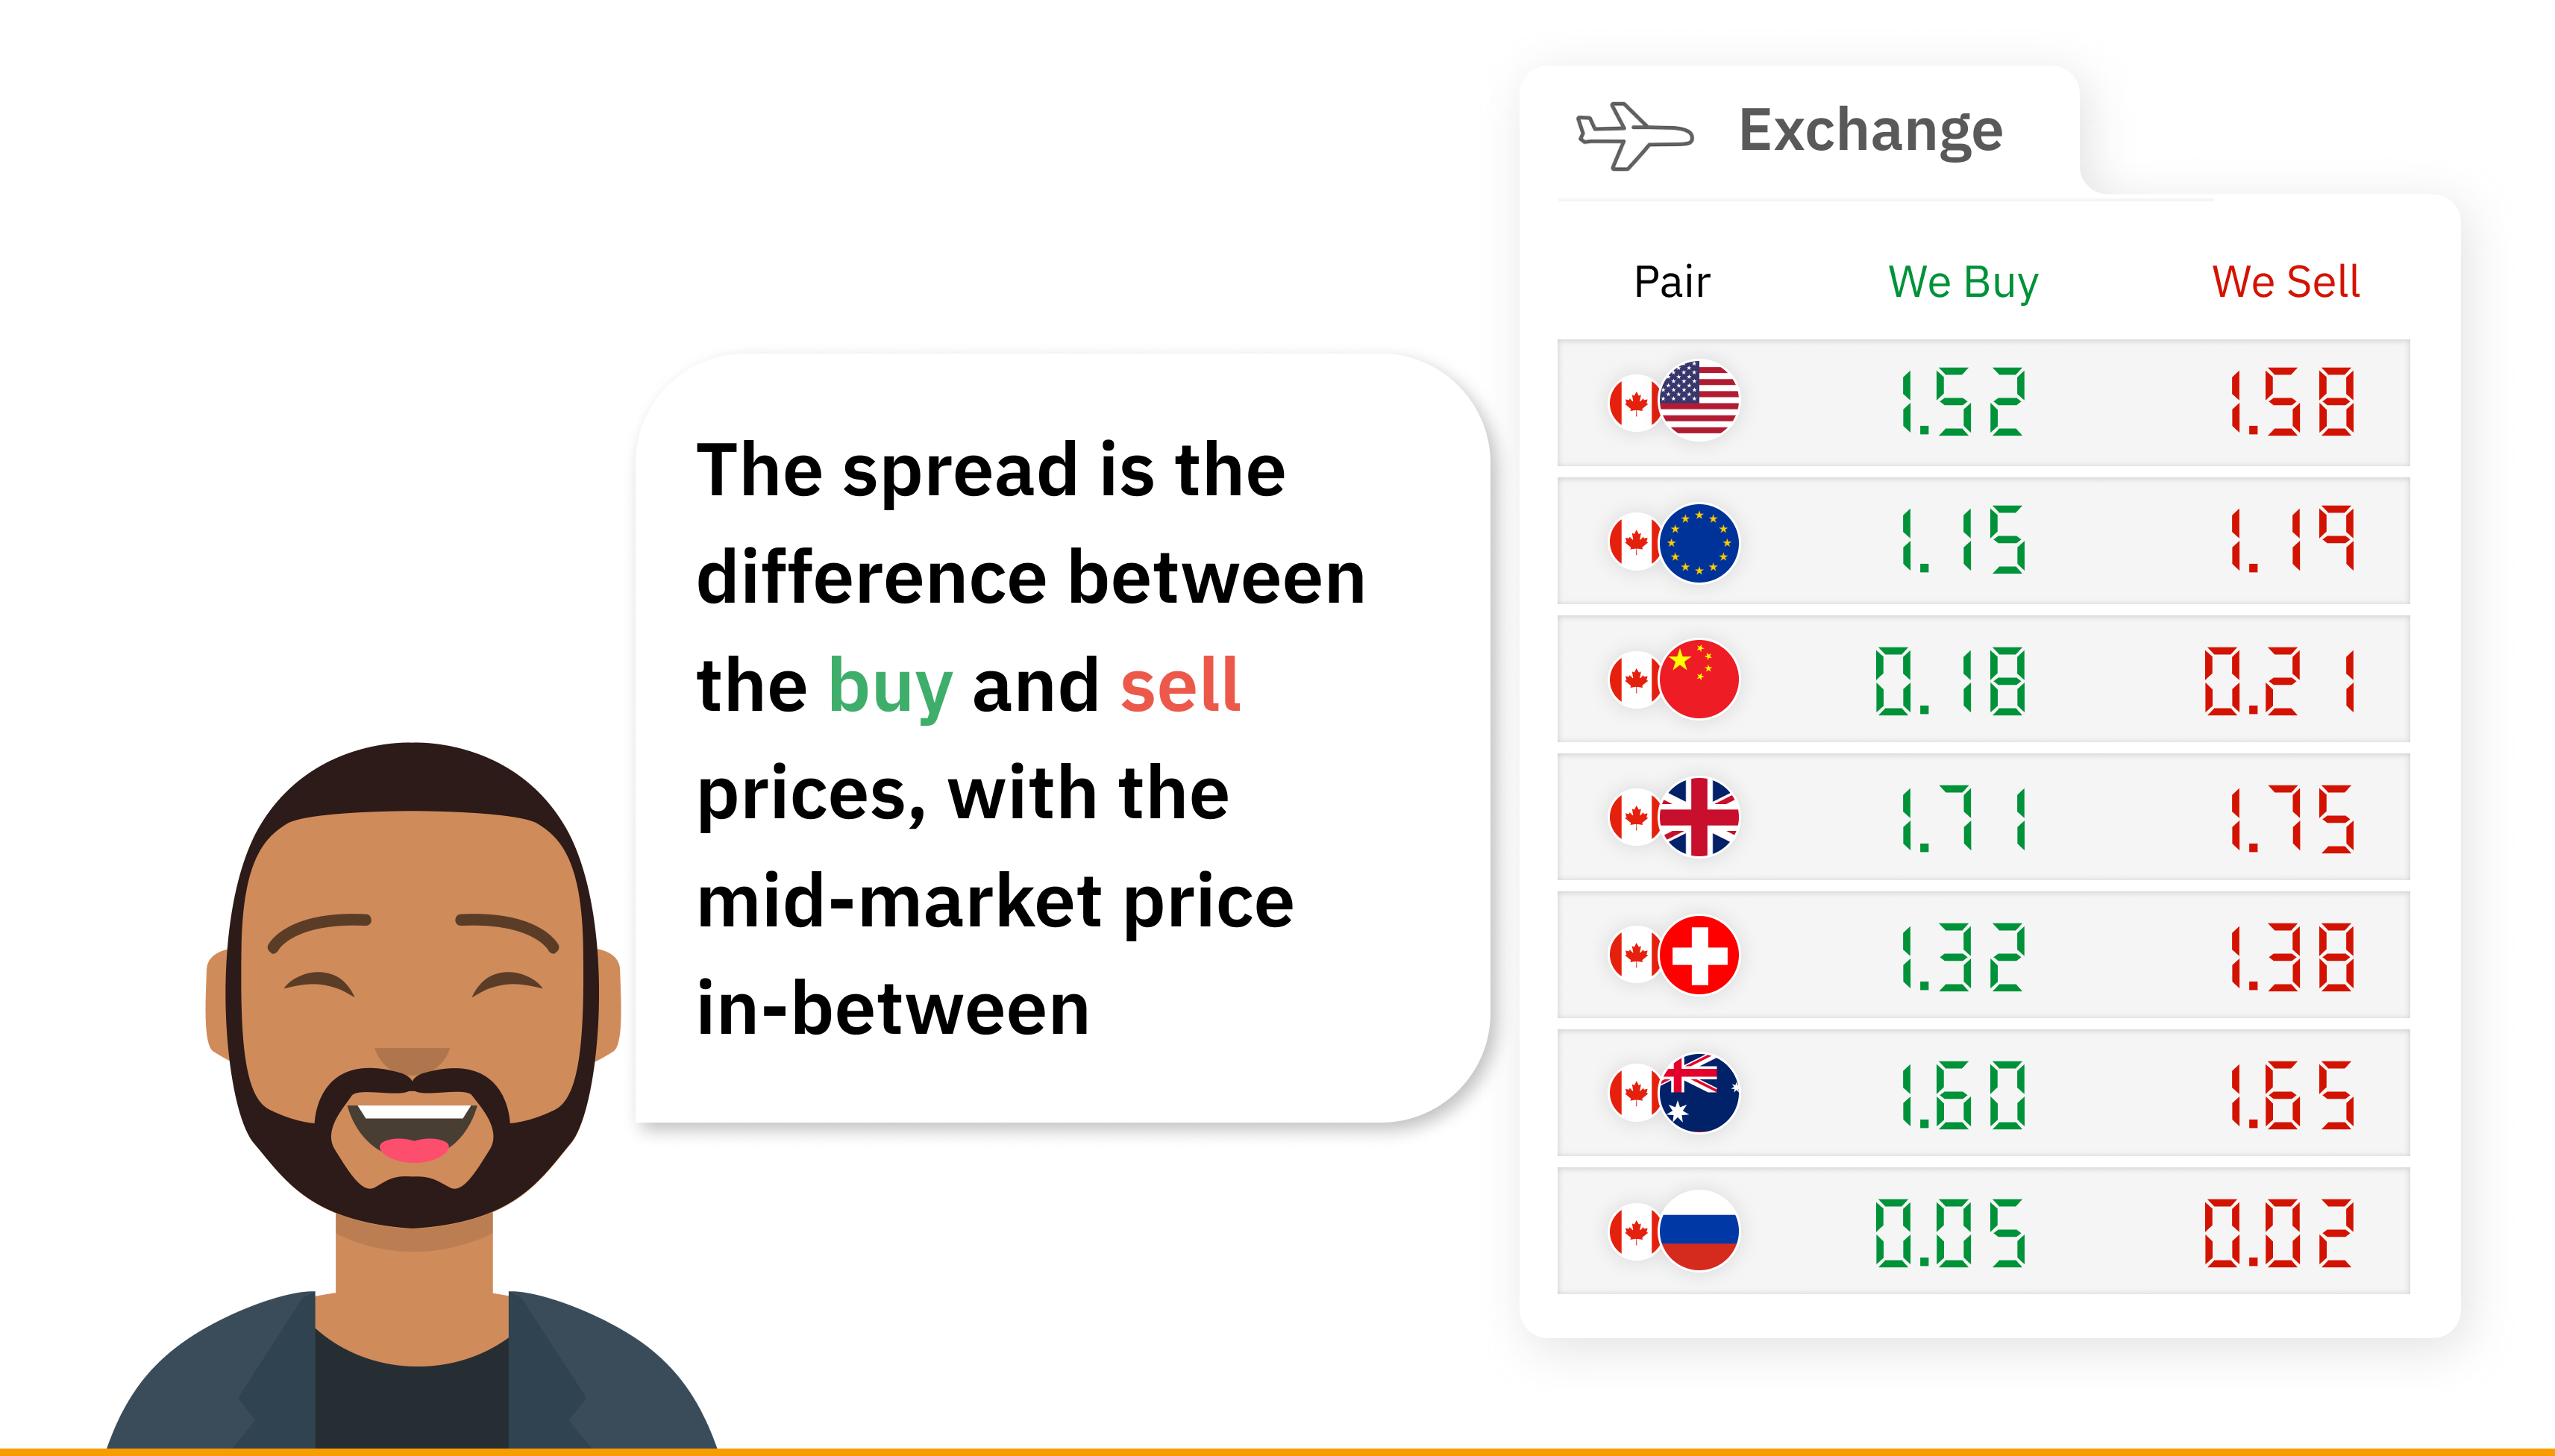 This image describes how the spread is the difference between the buy and sell prices displayed inside the Quick Trade app.